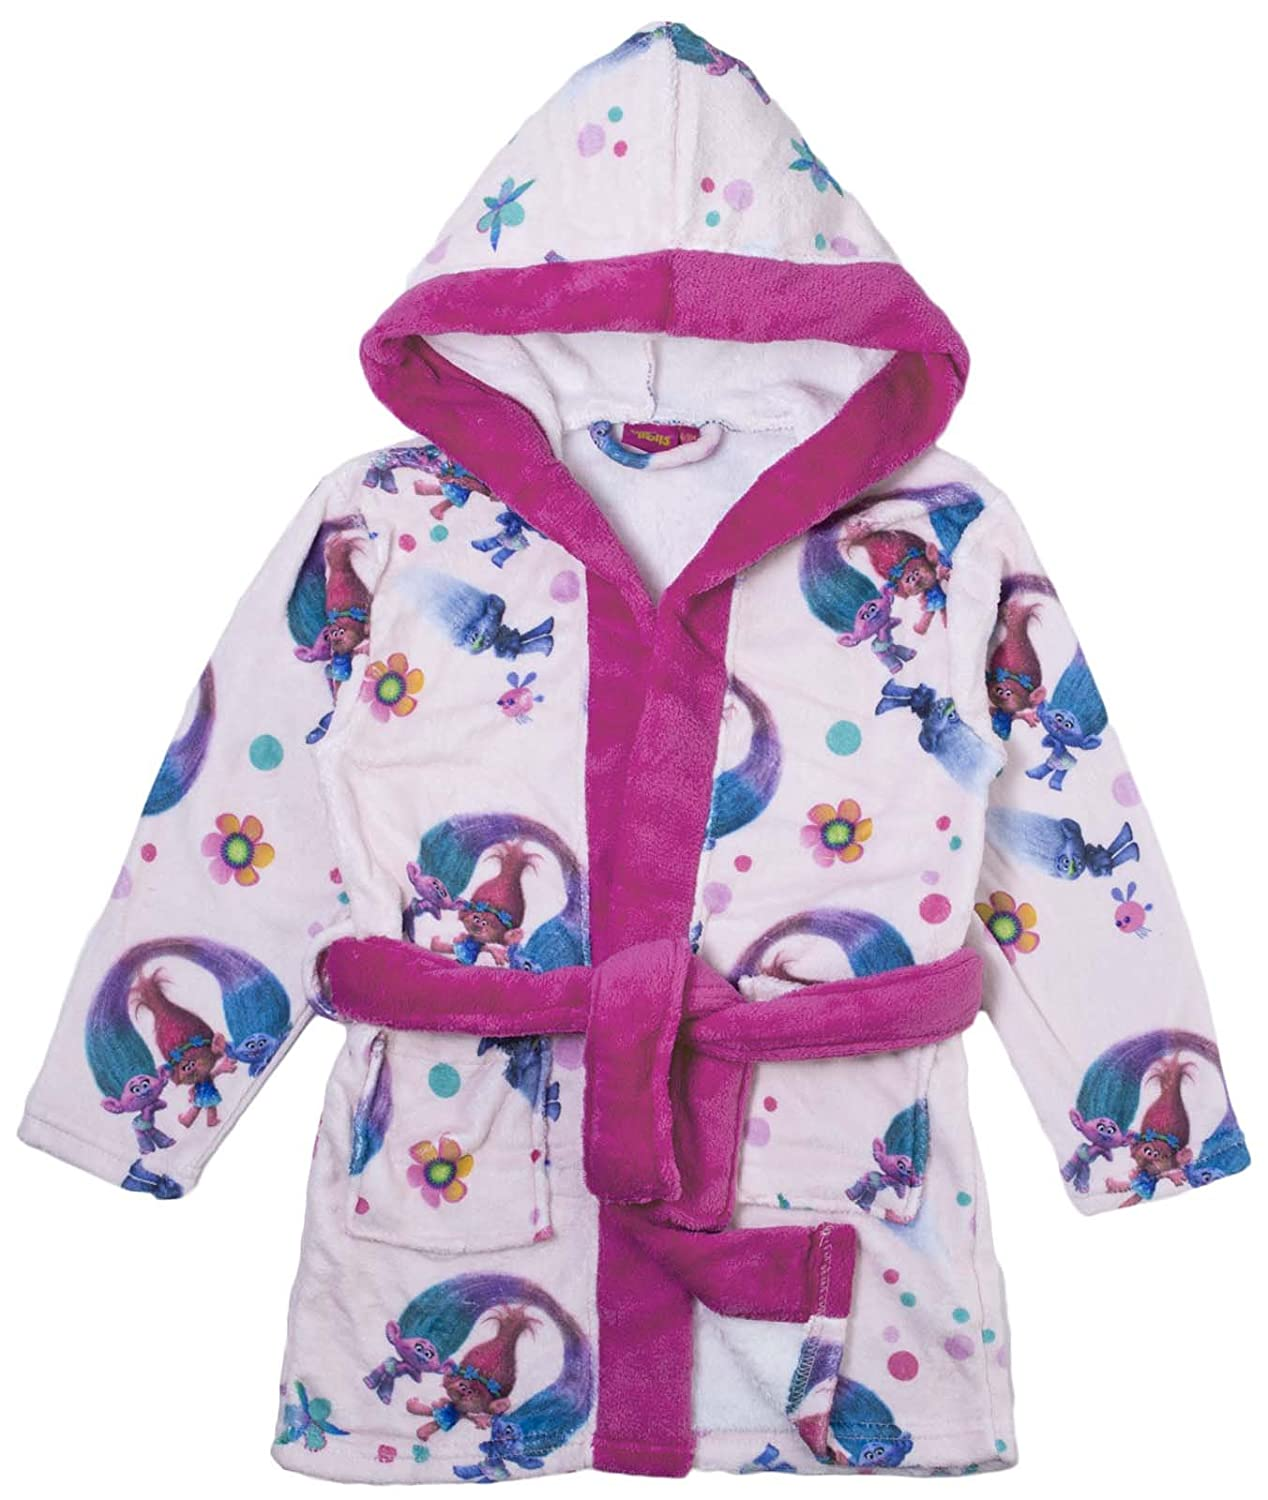 Trolls Girls Fleece Dressing Gown: Amazon.co.uk: Clothing